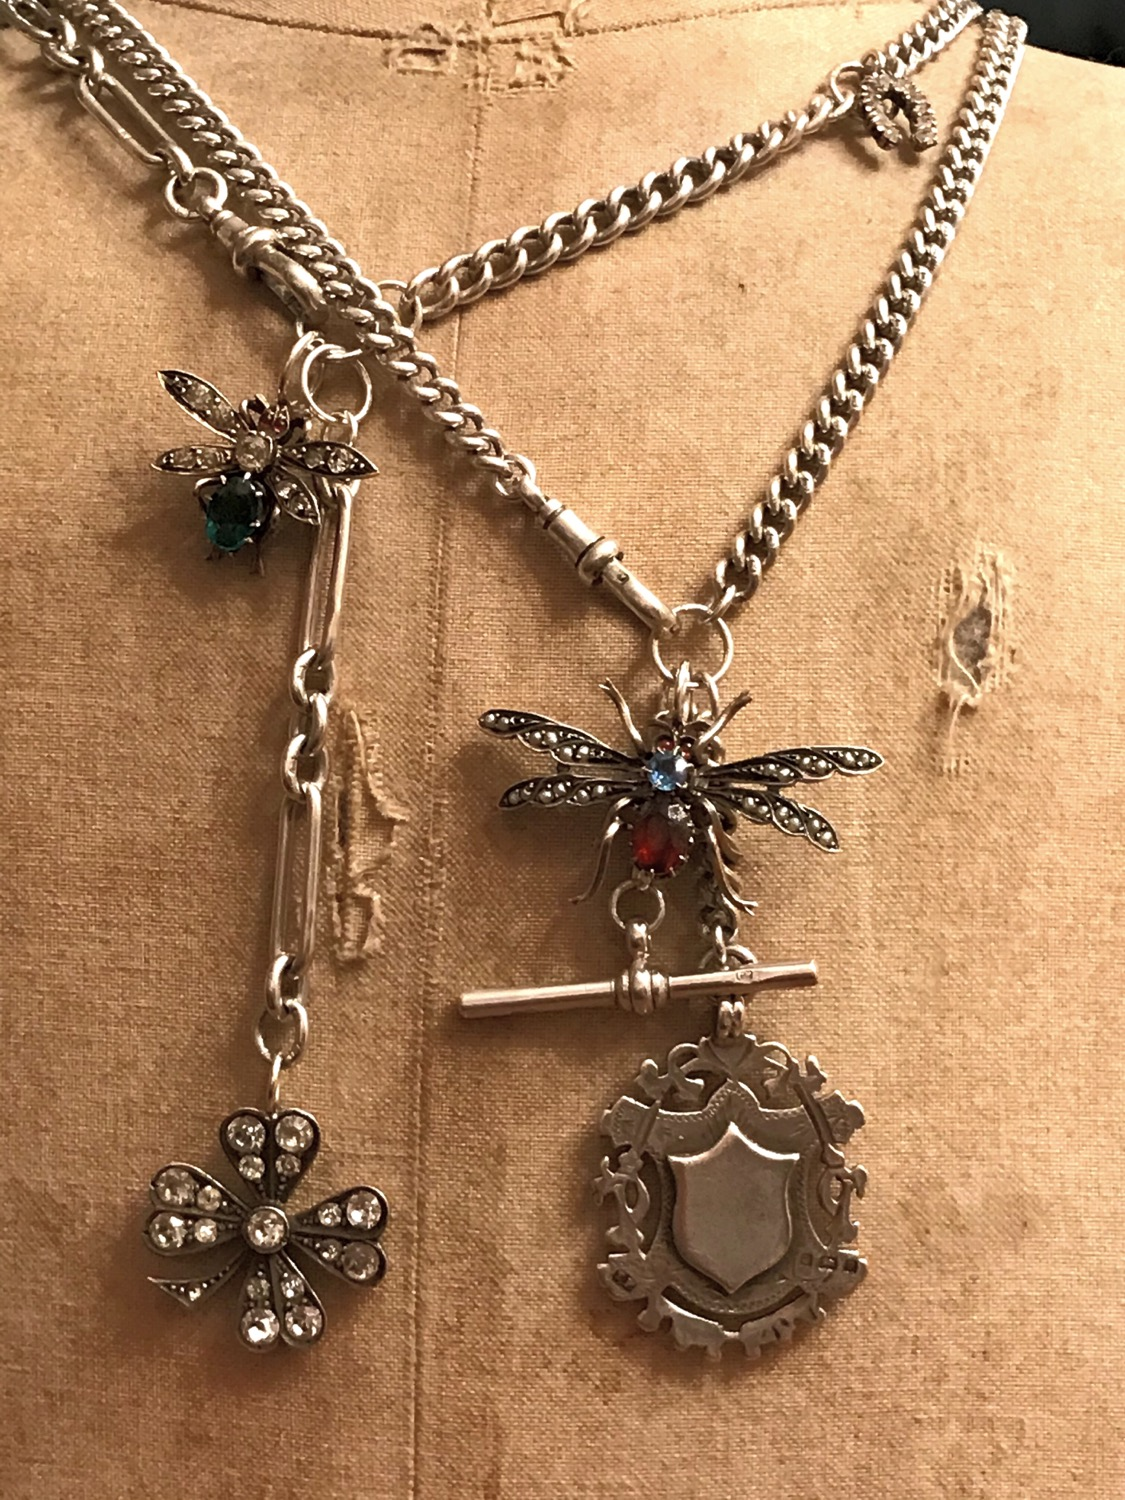 Thumbnail: Antique Victorian Silver Watch Chain, Butterfly, Bug, Insect, Fob Charm Necklace